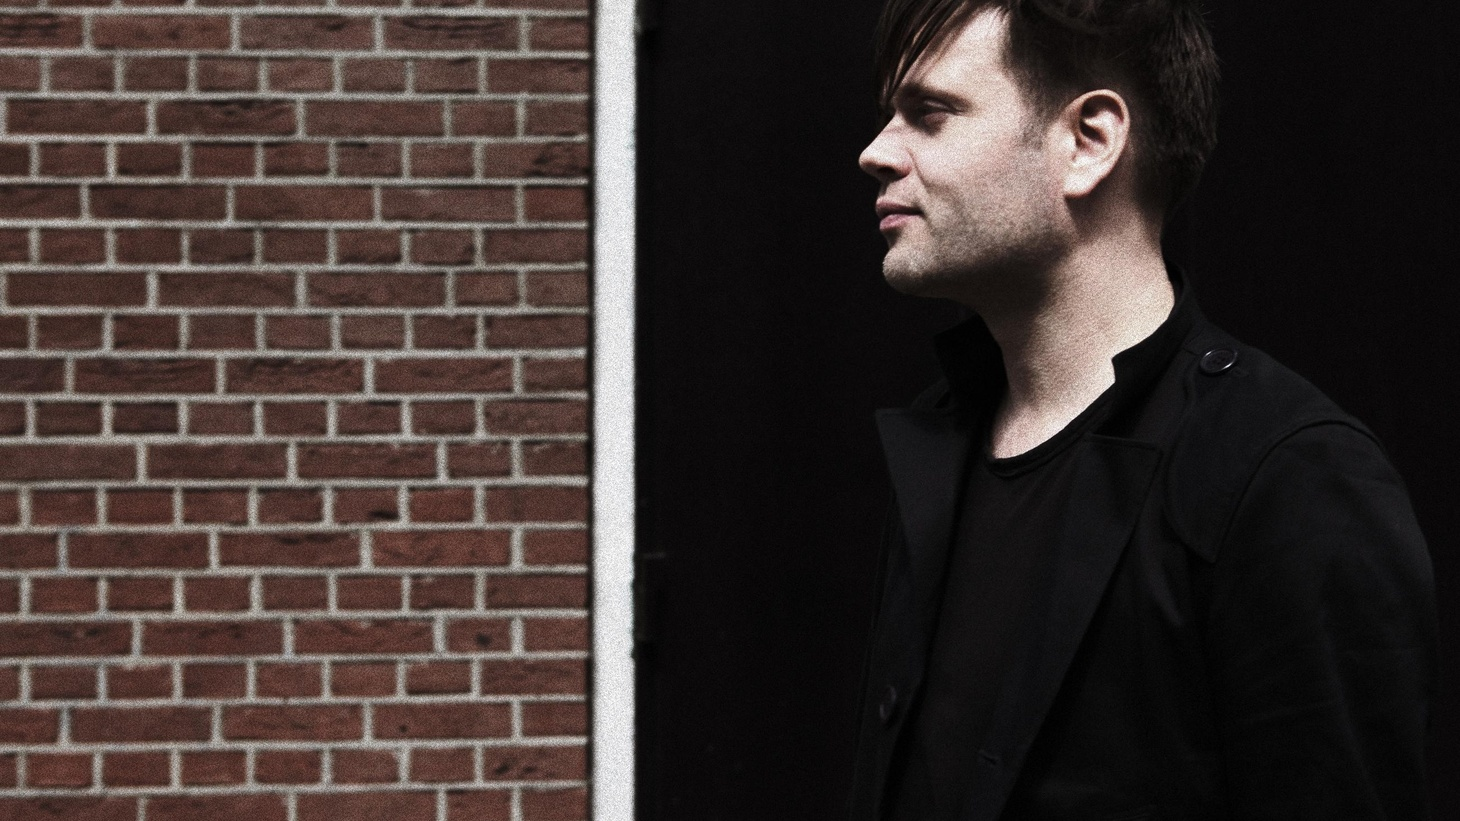 """When Danish artist Anders Trentemoller started thinking about a second full length, he began by collecting ideas and let the music take him in new directions. The result is The Great Wide Yonder, an organic recording that leans toward an indie rock sound while retaining the electronica elements he is known for. Today's Top Tune is """"Shades of Marble."""""""